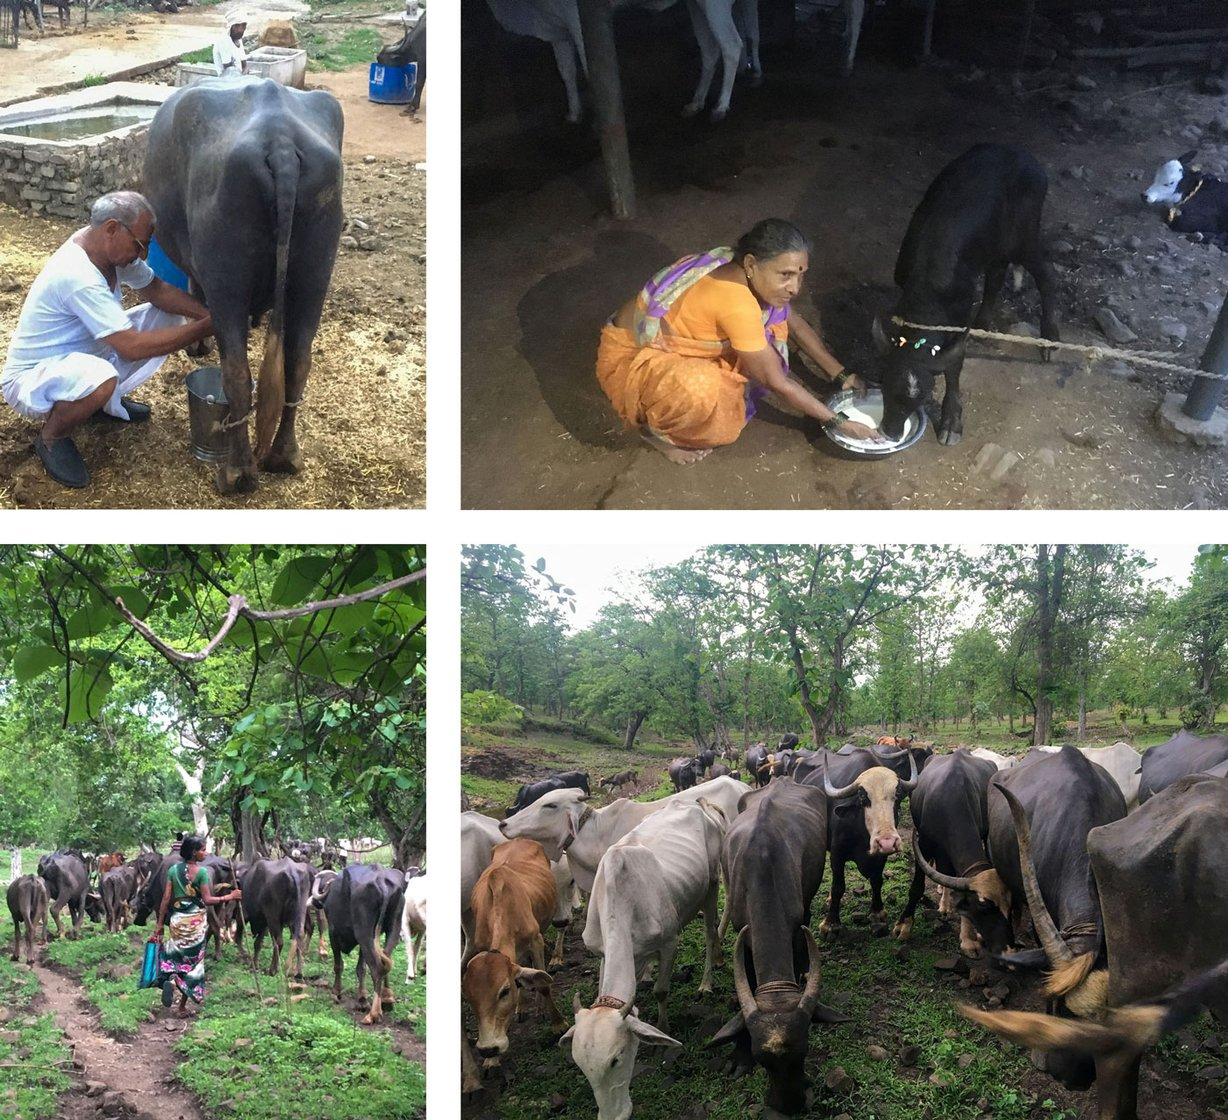 Nanda Gaolis live in 40-50 villages of Wardha, around the Bor Tiger Reserve. They rear the native Gaolao cow breed (top row), and are the major suppliers of milk and milk products in the district. The fall in demand during the lockdown has hit them hard (file photos)